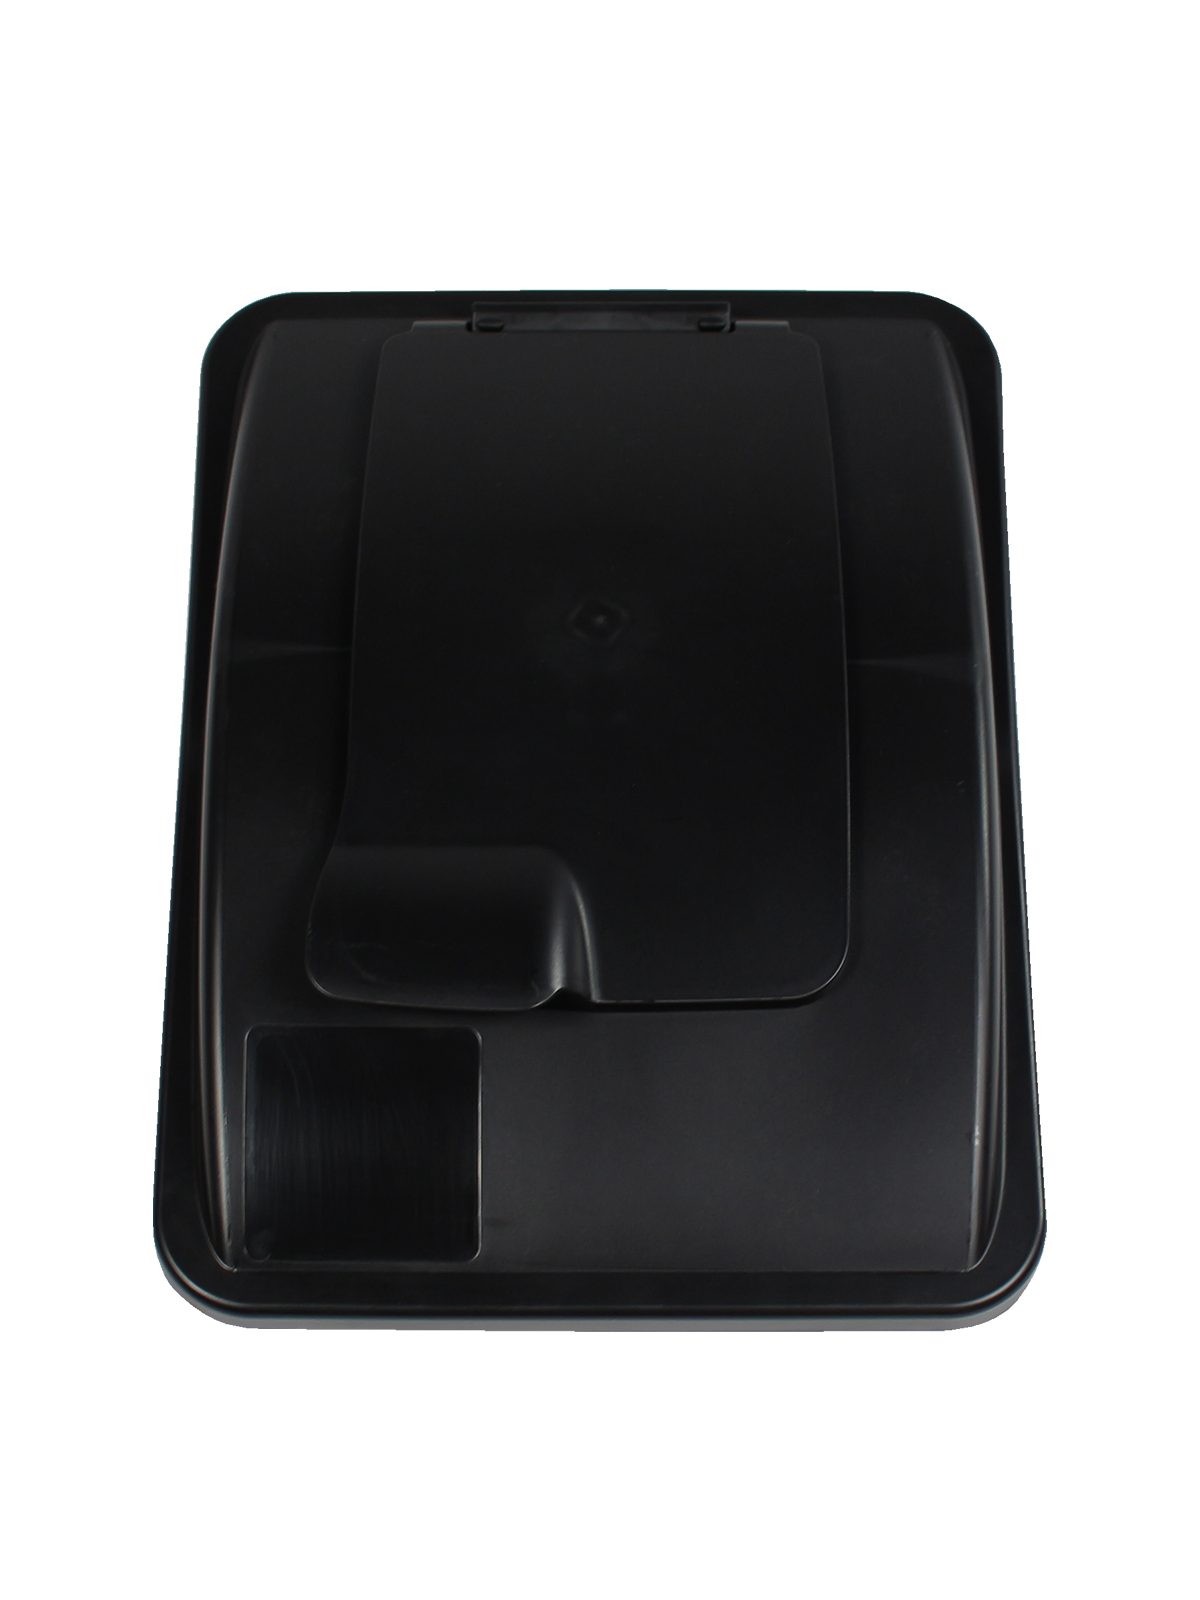 WASTE WATCHER XL - Lid - Solid Lift - Black